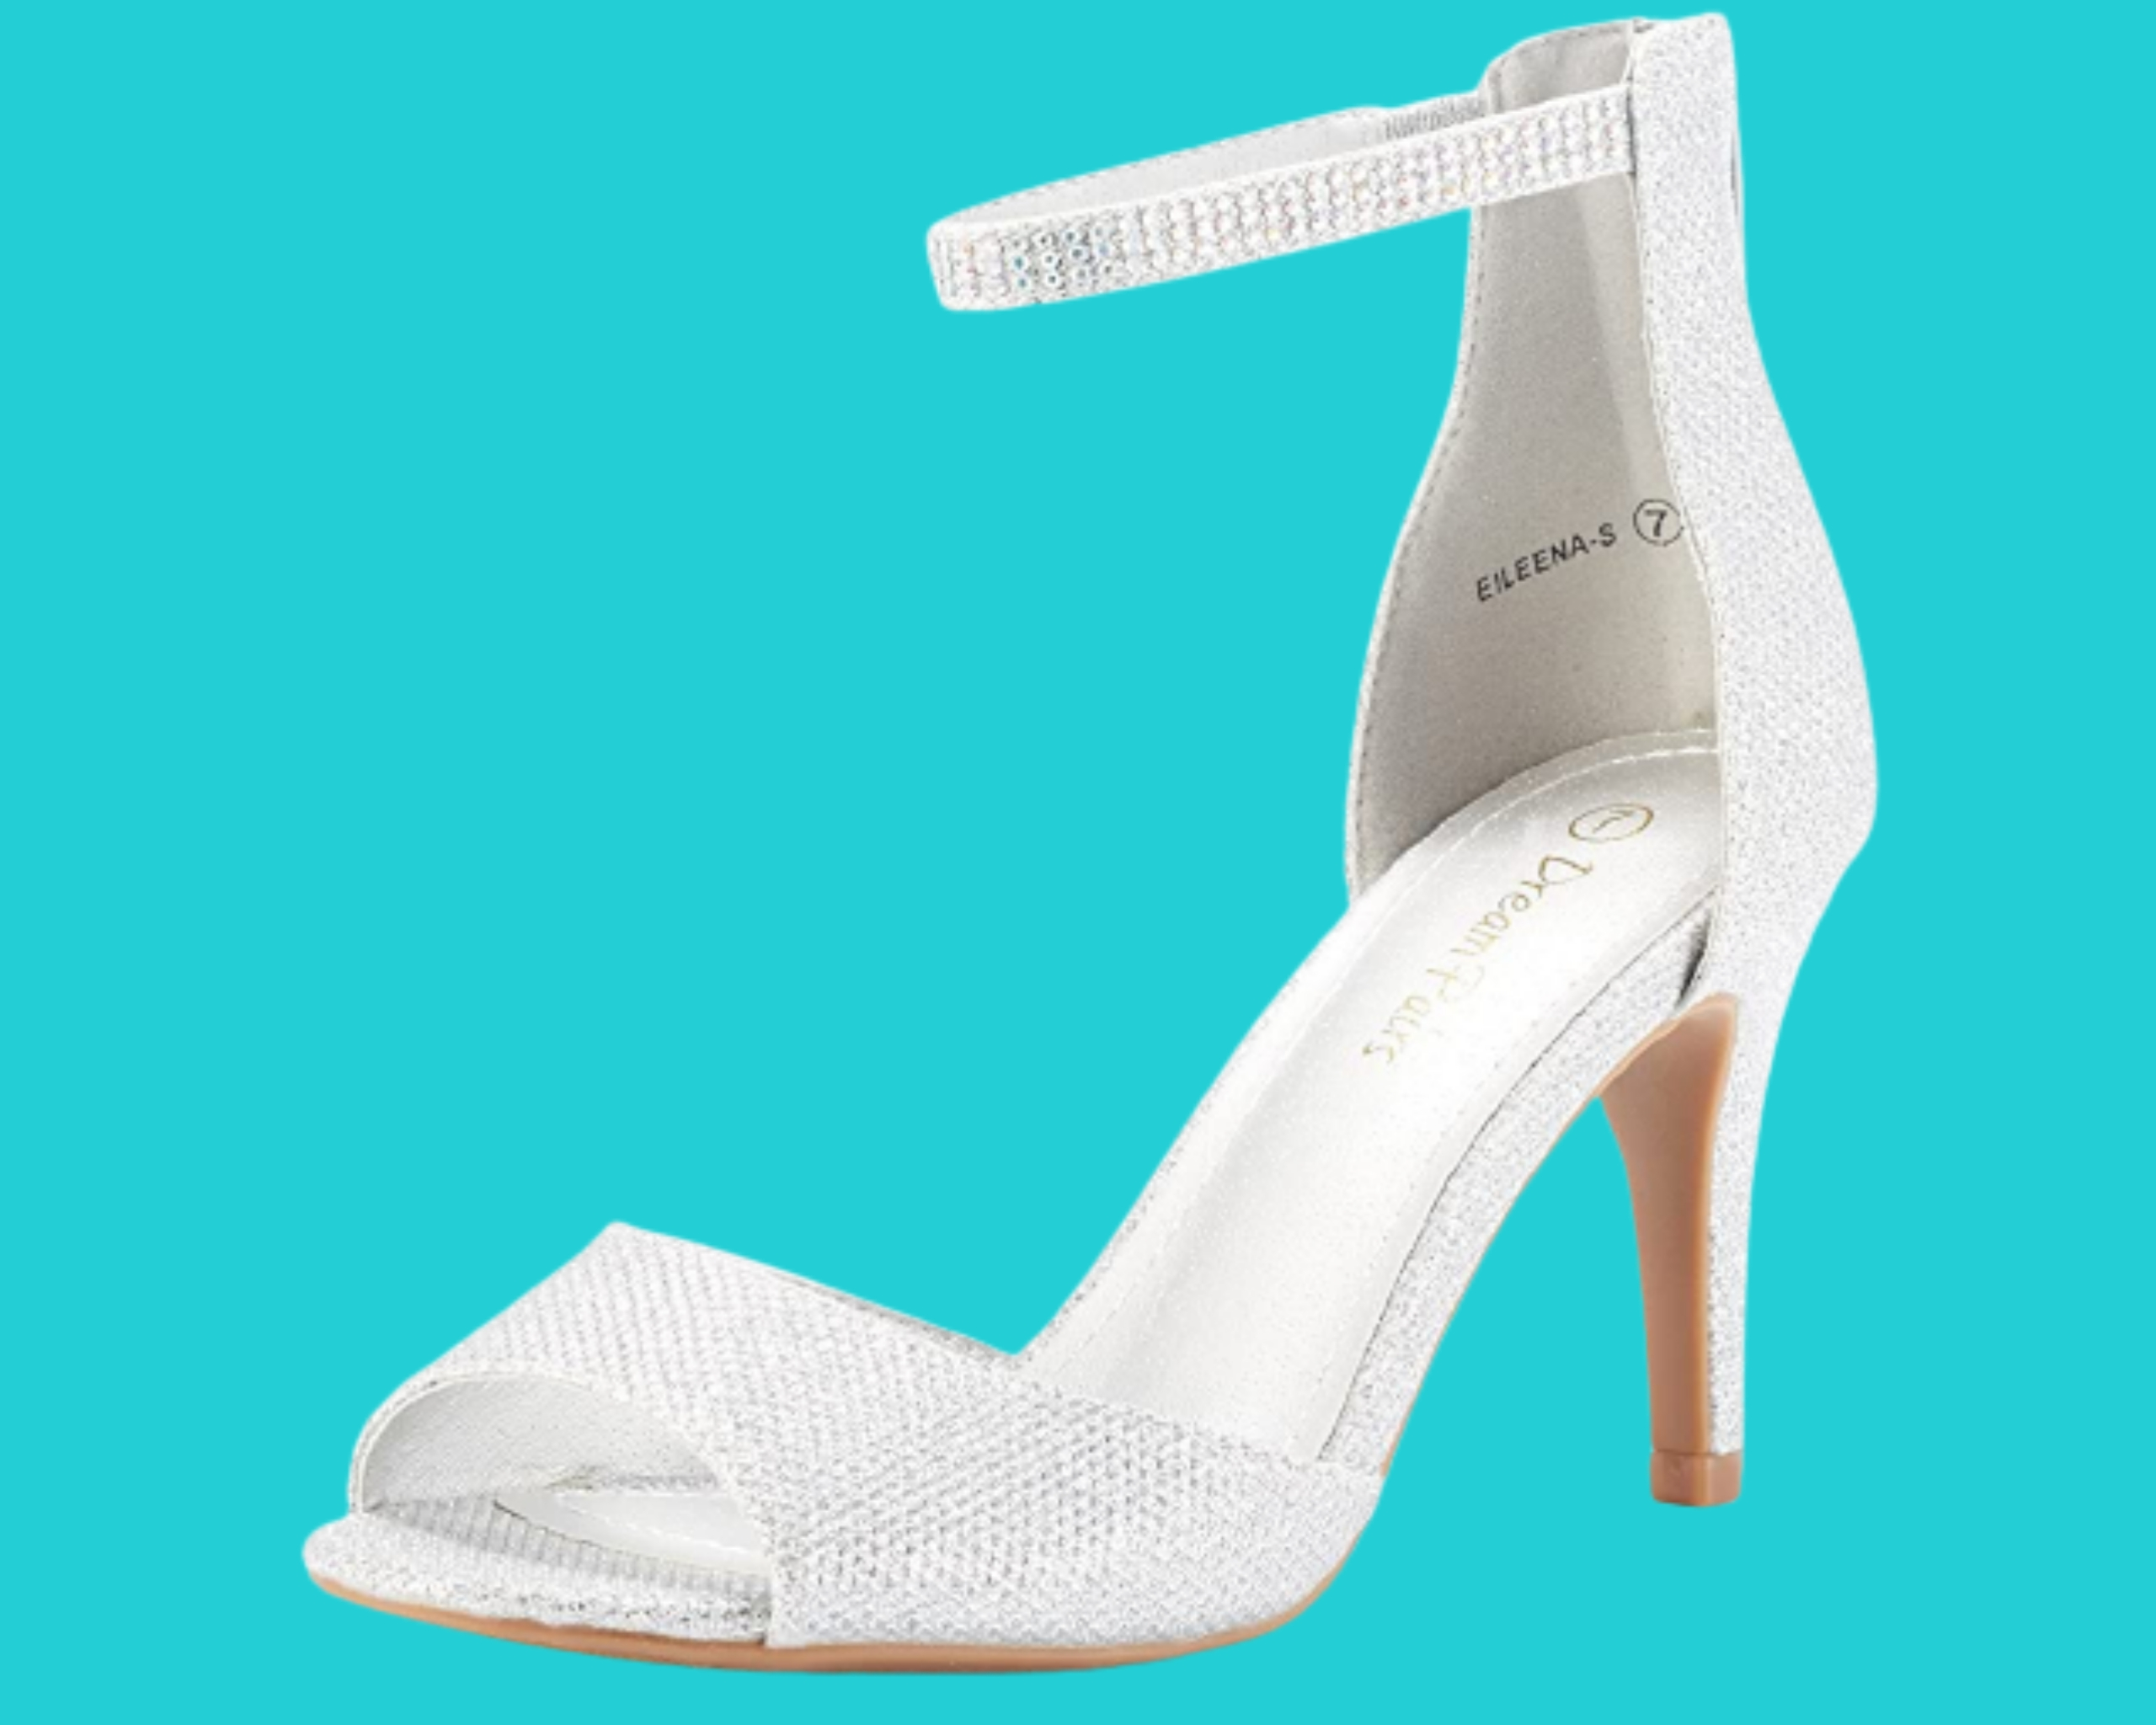 Women's shoes for parties